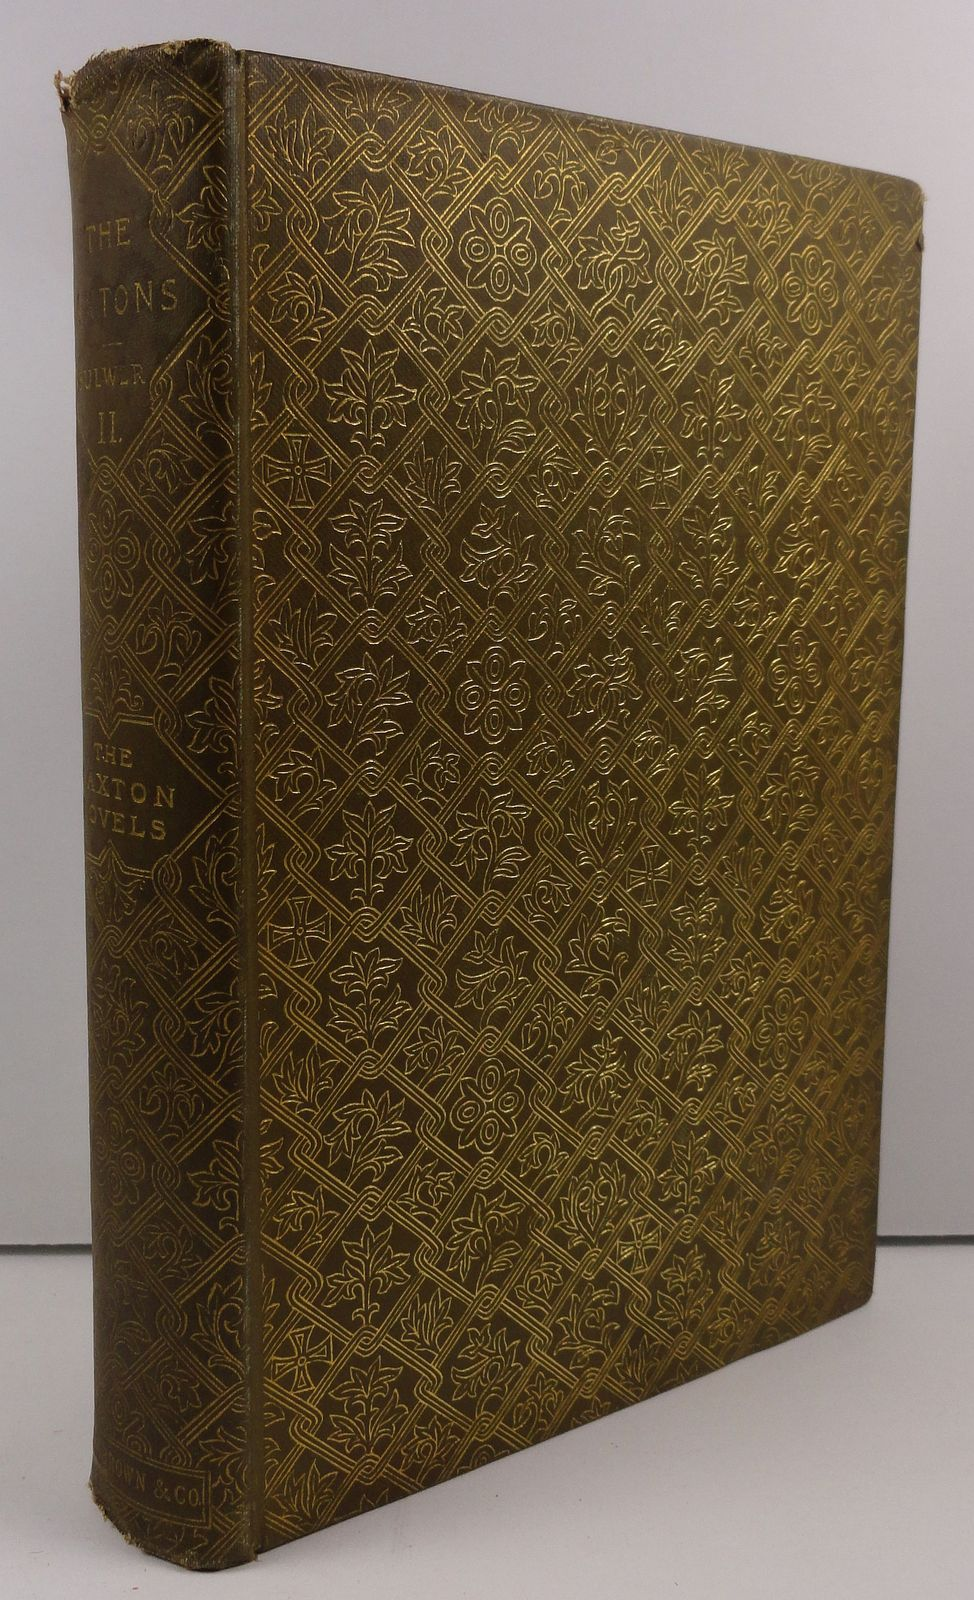 The Caxtons Edward Bulwer Lytton Volume 2 Little Brown 1892